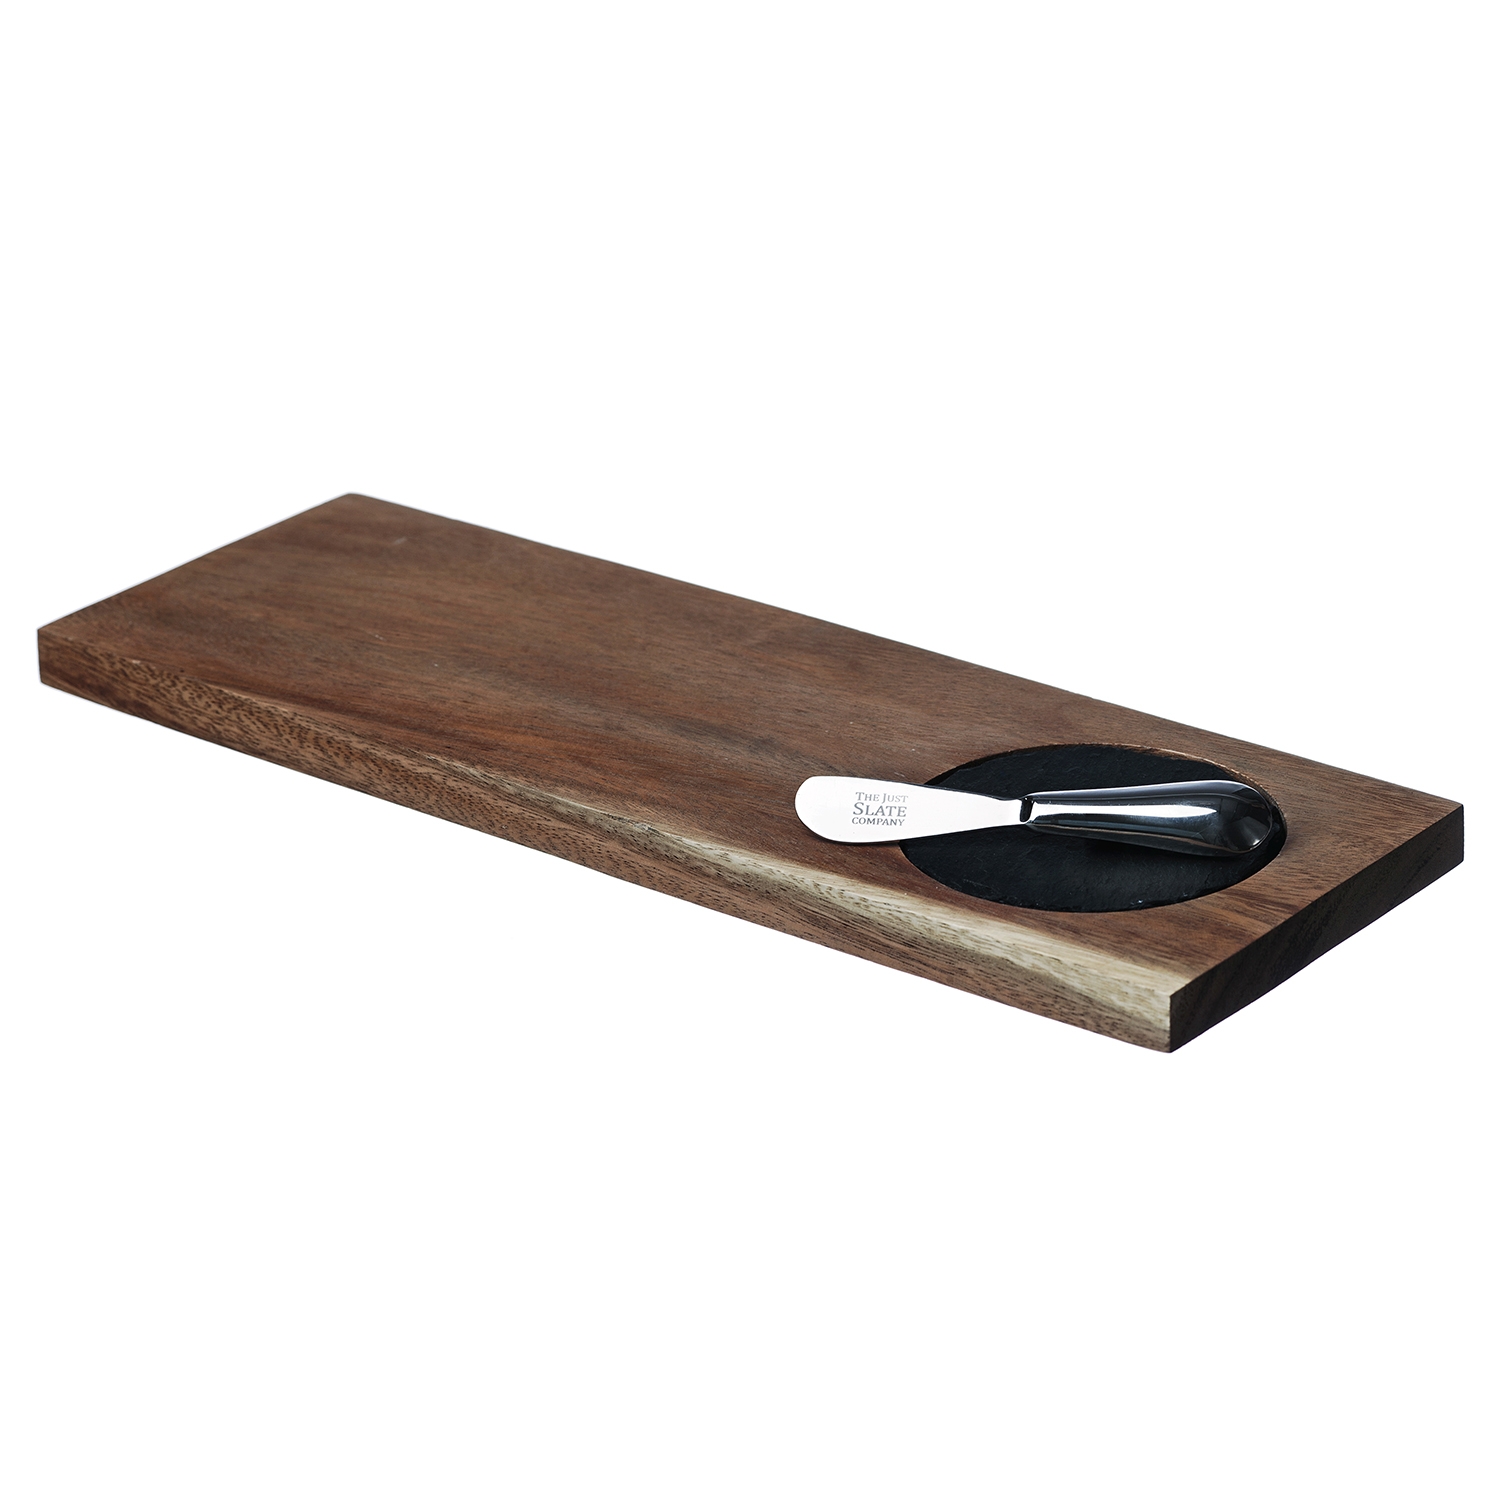 The Just Slate Company – Small Acacia Antipasti Serving Set in Gift Box